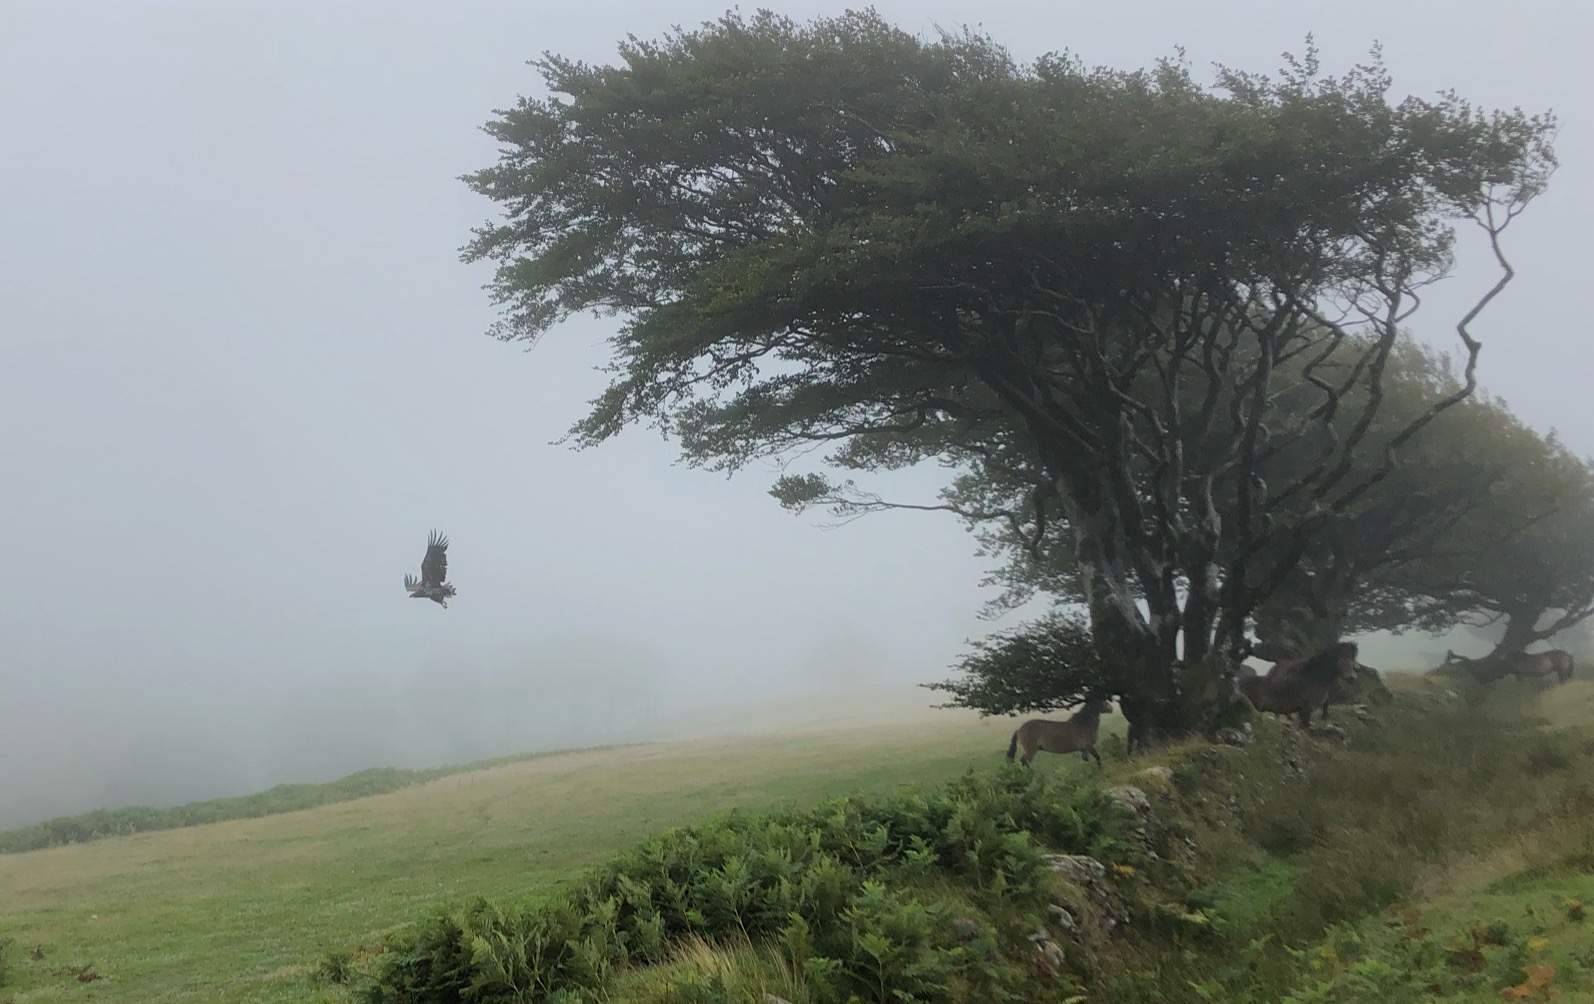 The day a white-tailed eagle appeared out of the mist